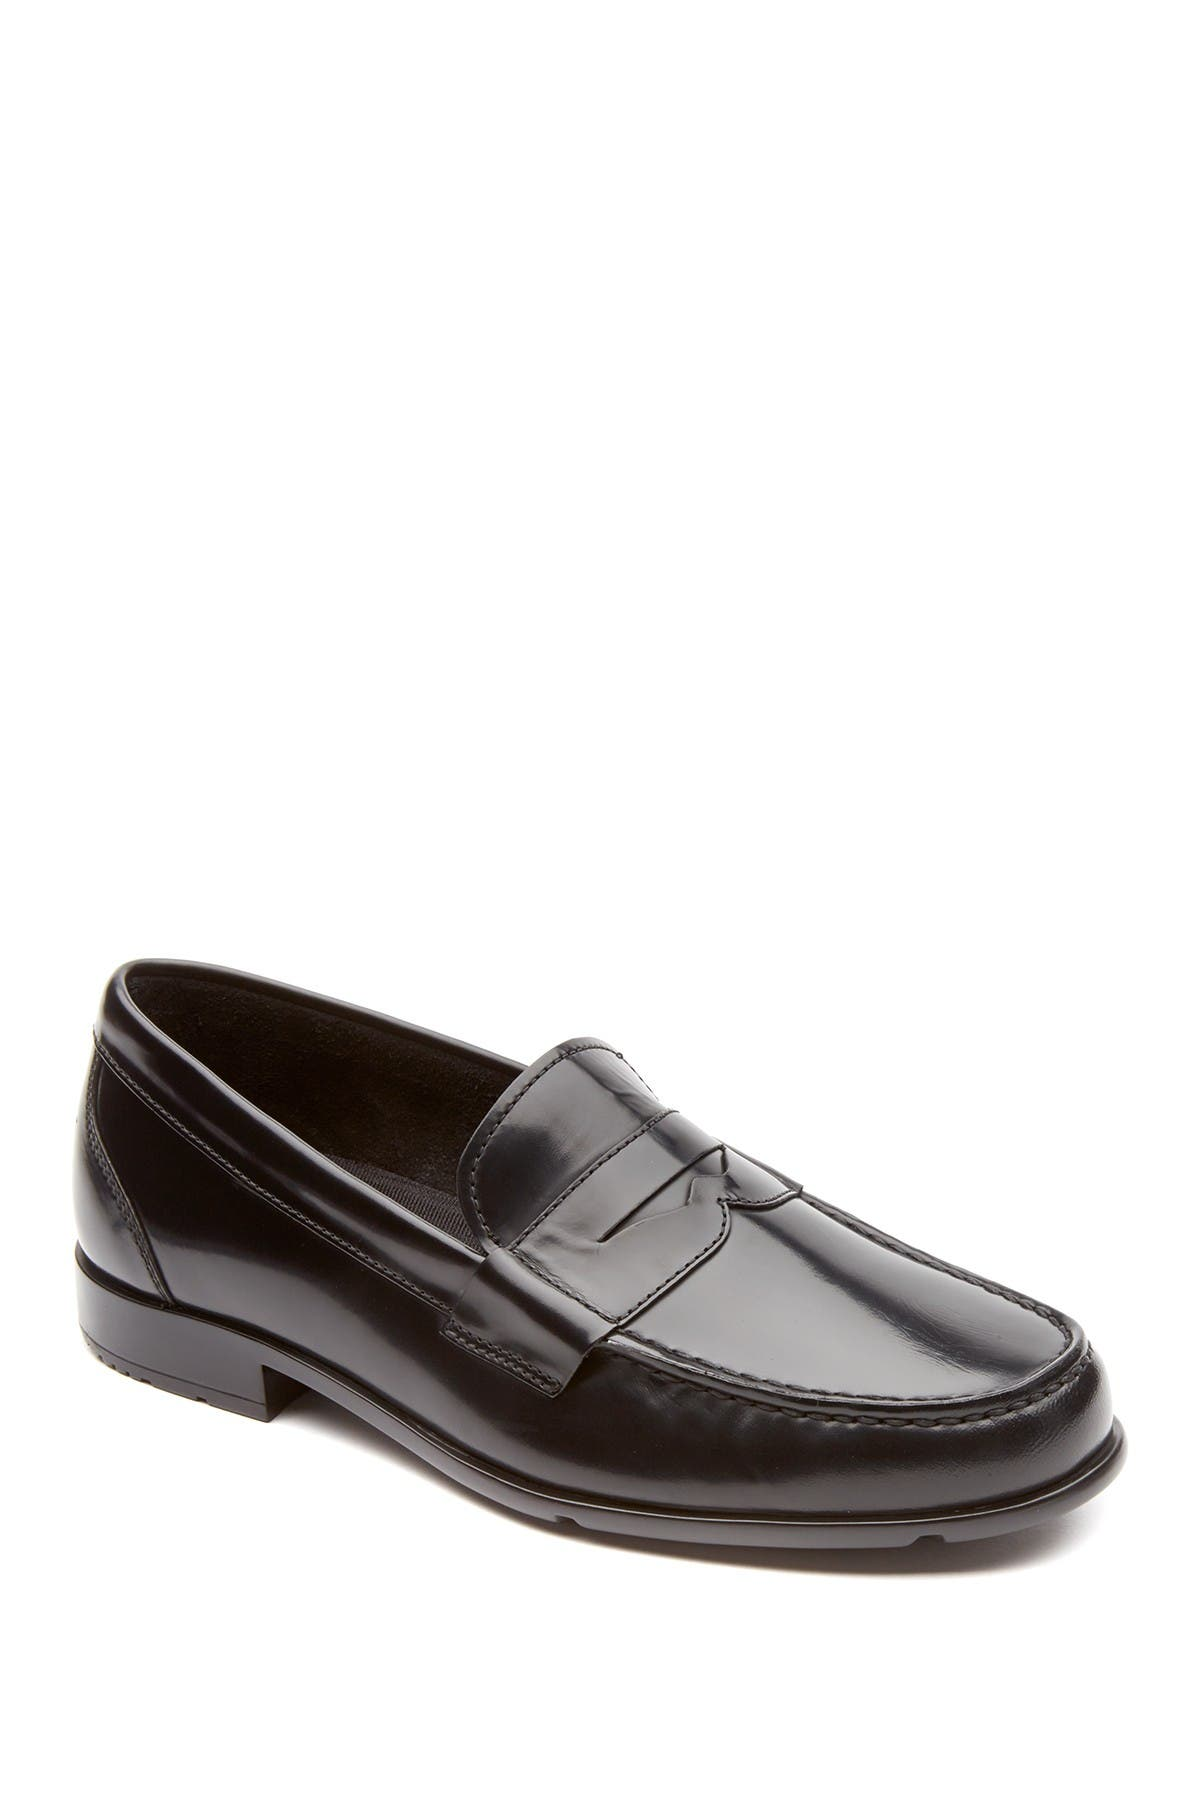 Image of Rockport Barnabay Lane Penny Loafer - Wide Width Available